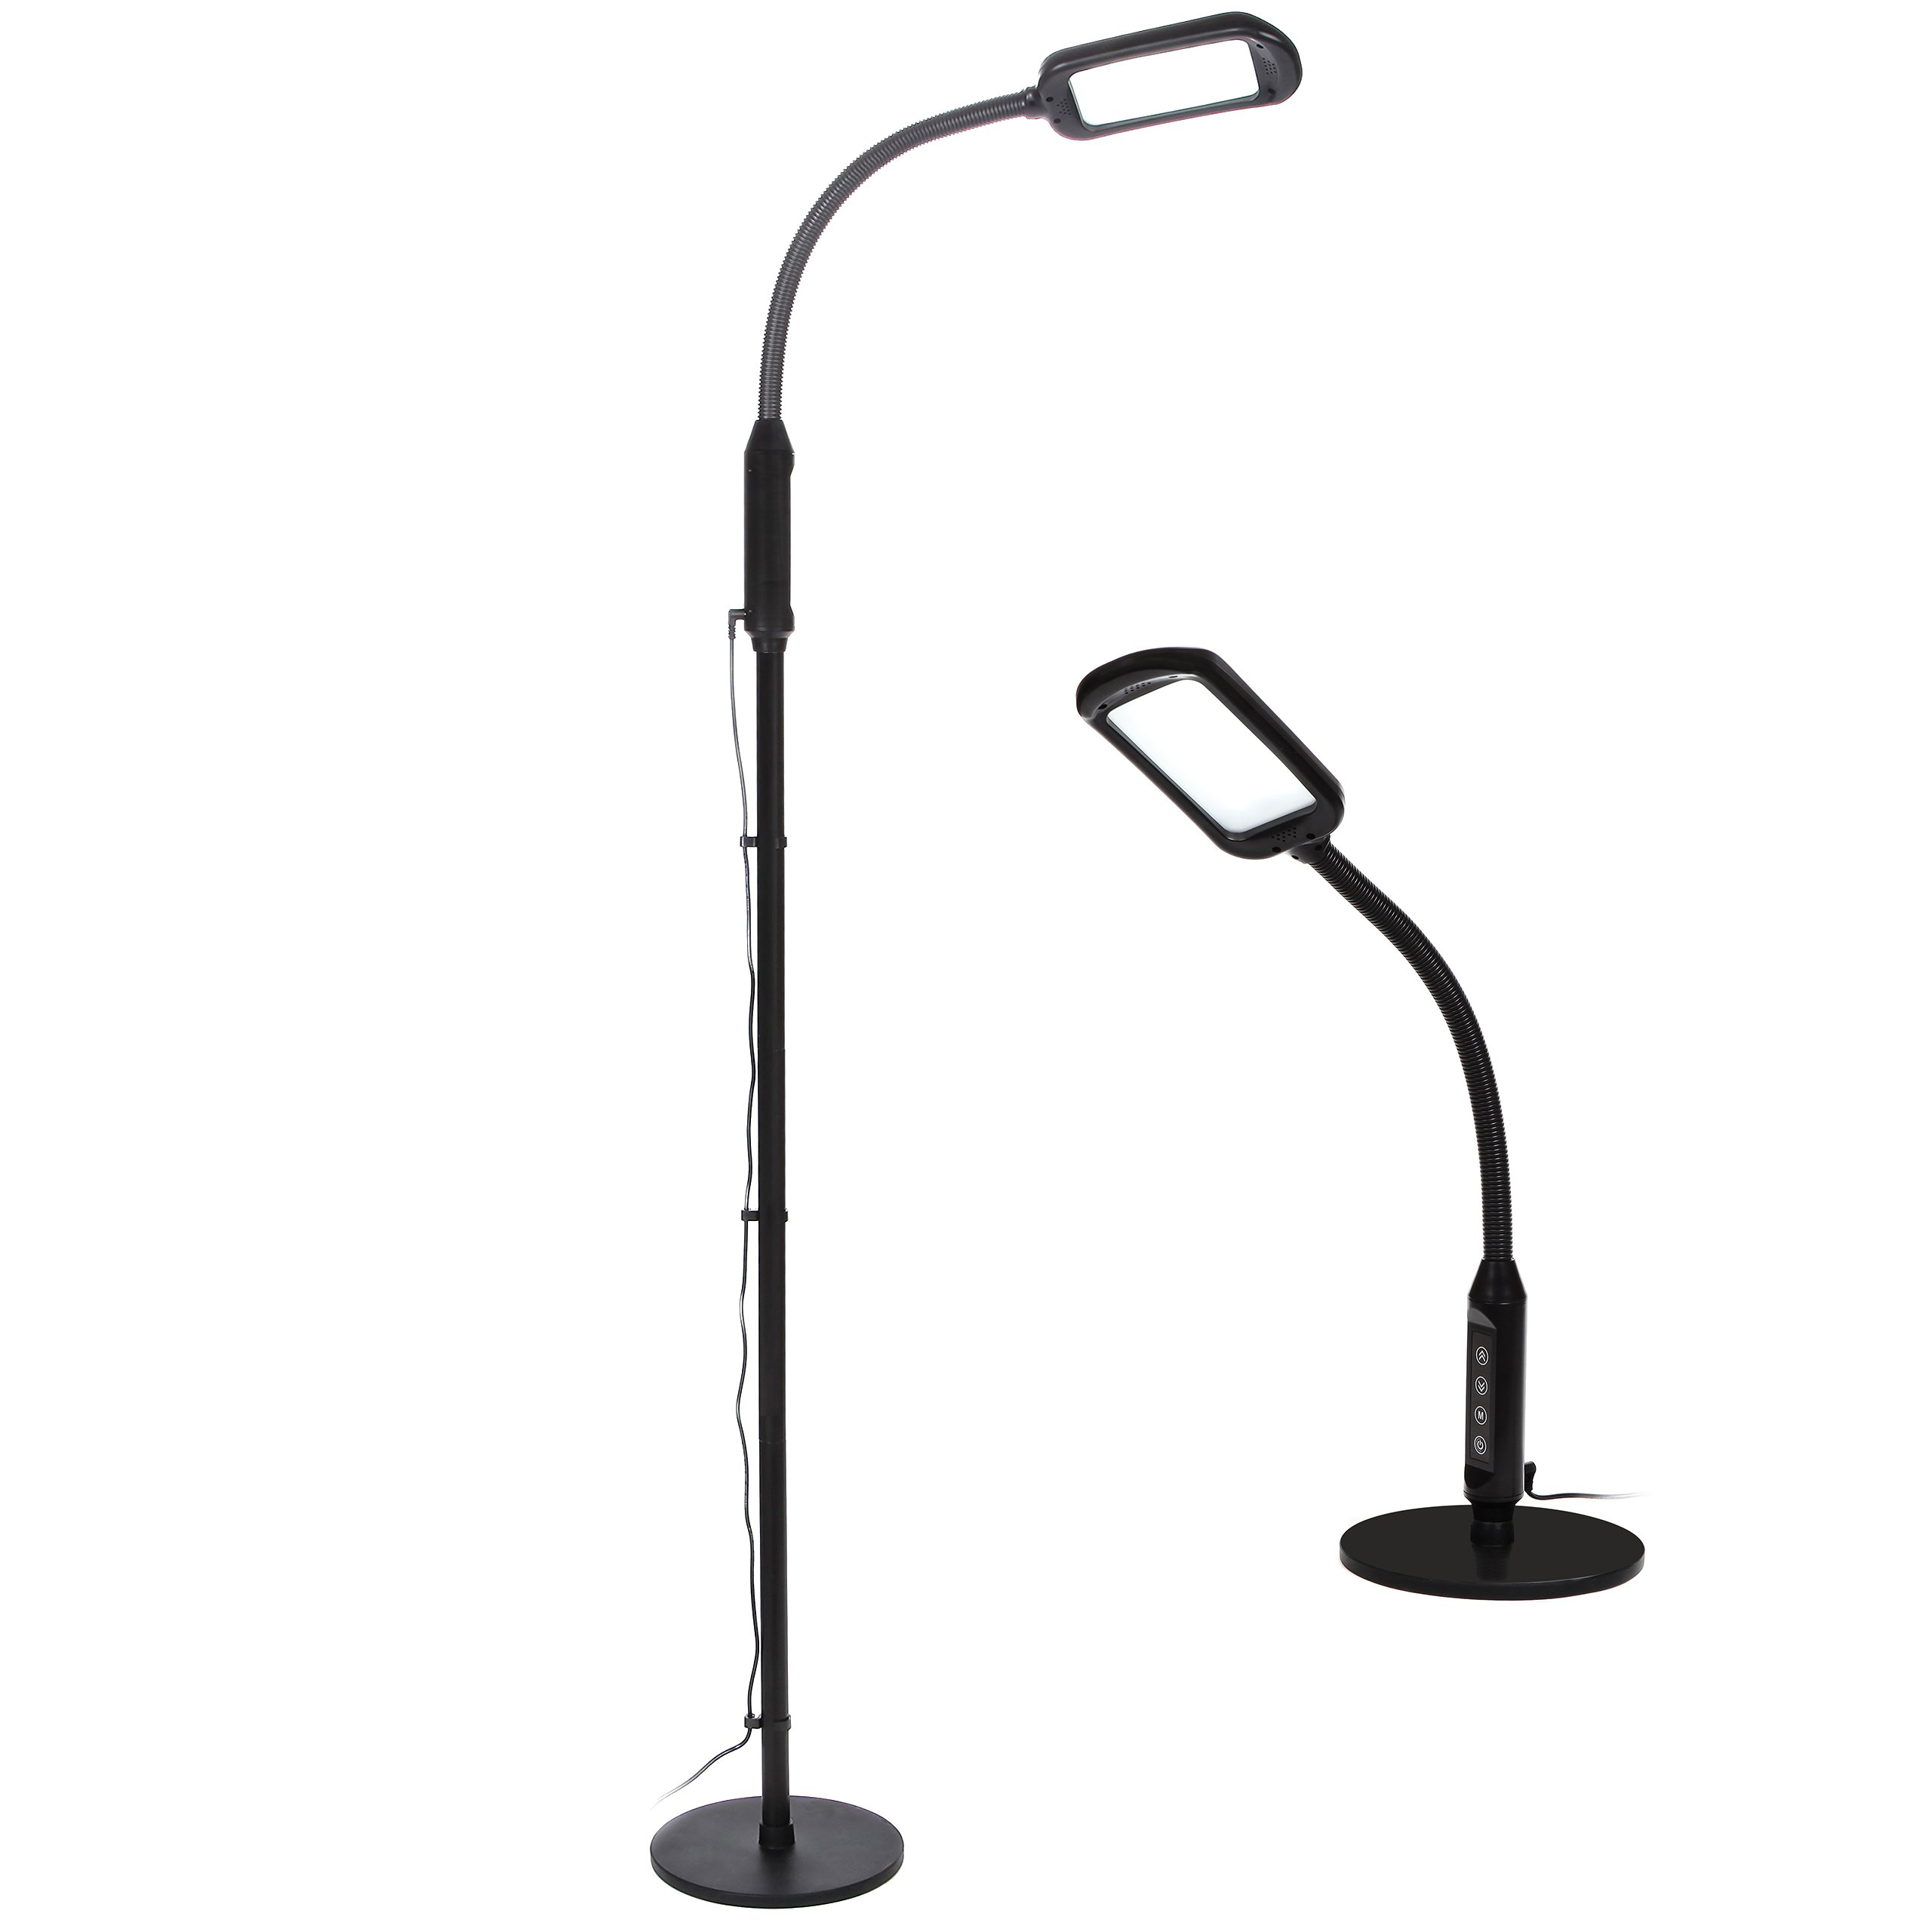 Brightech Litespan LED 2-in-1 Edition - Dimmable Reading Desk and Floor Lamp- Adjustable Color Temperature Switch- Standing Pole Light with Gooseneck for Living Room Dorm Bedroom Office Task- Black